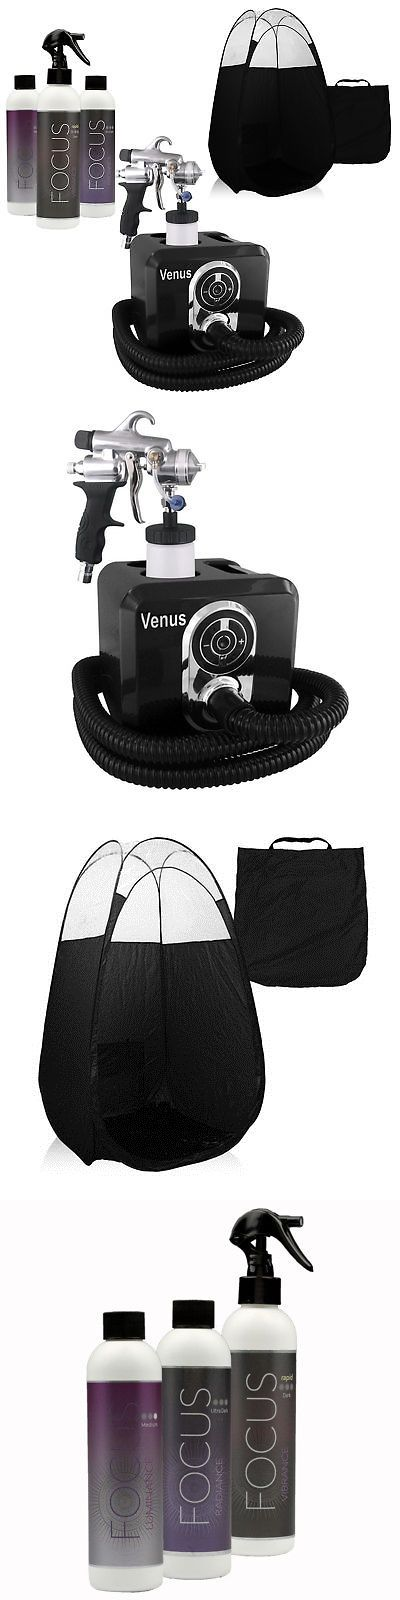 Airbrush Tanning Kits: Venus Ultra Spray Tanning Kit With Black Tent And Sunless Tanning Solution -> BUY IT NOW ONLY: $339 on eBay!